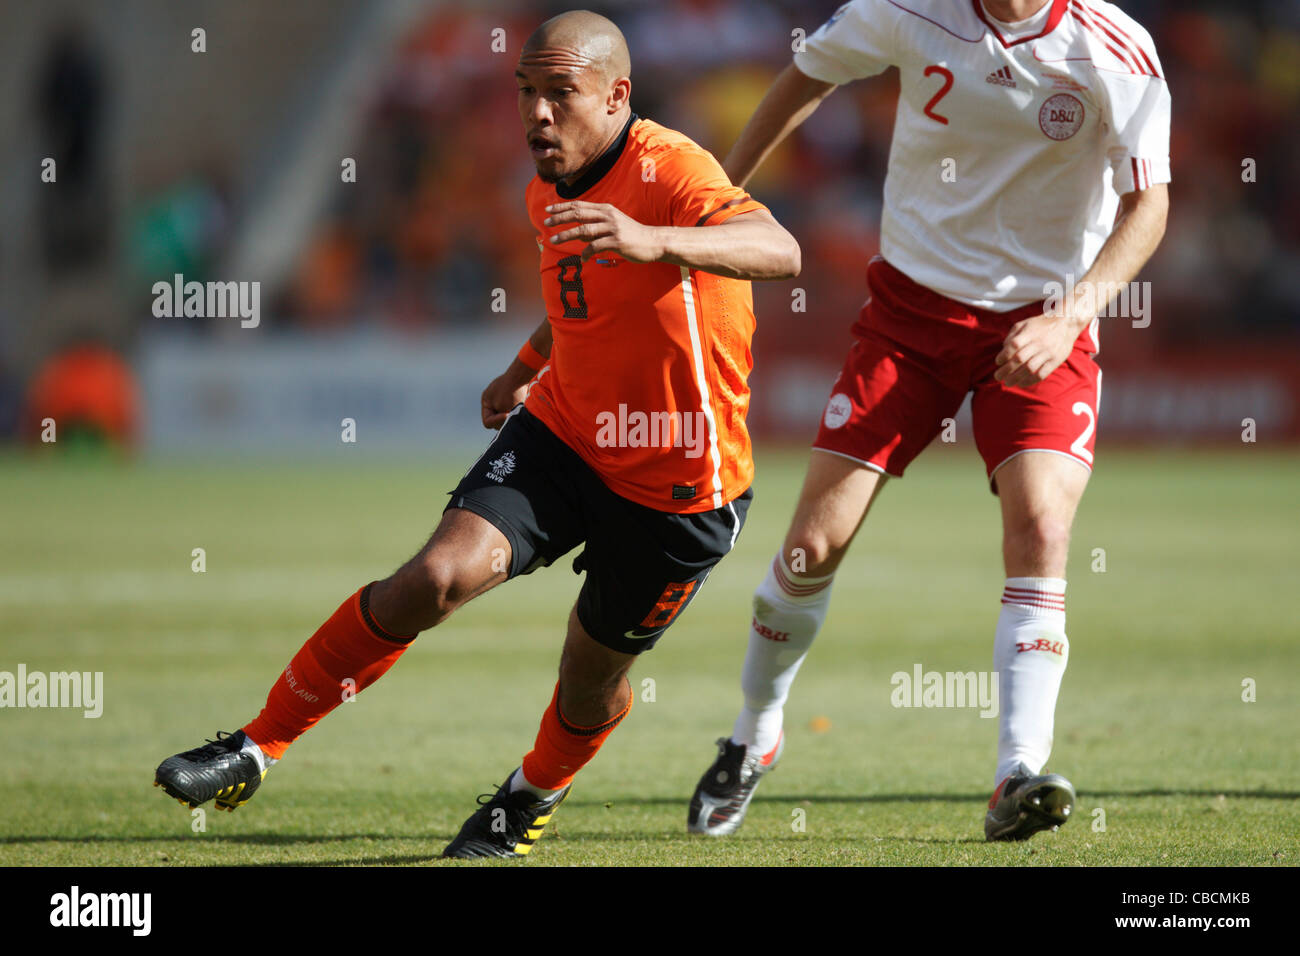 Nigel de Jong of the Netherlands in action during a FIFA World Cup match against Denmark at Soccer City Stadium. - Stock Image